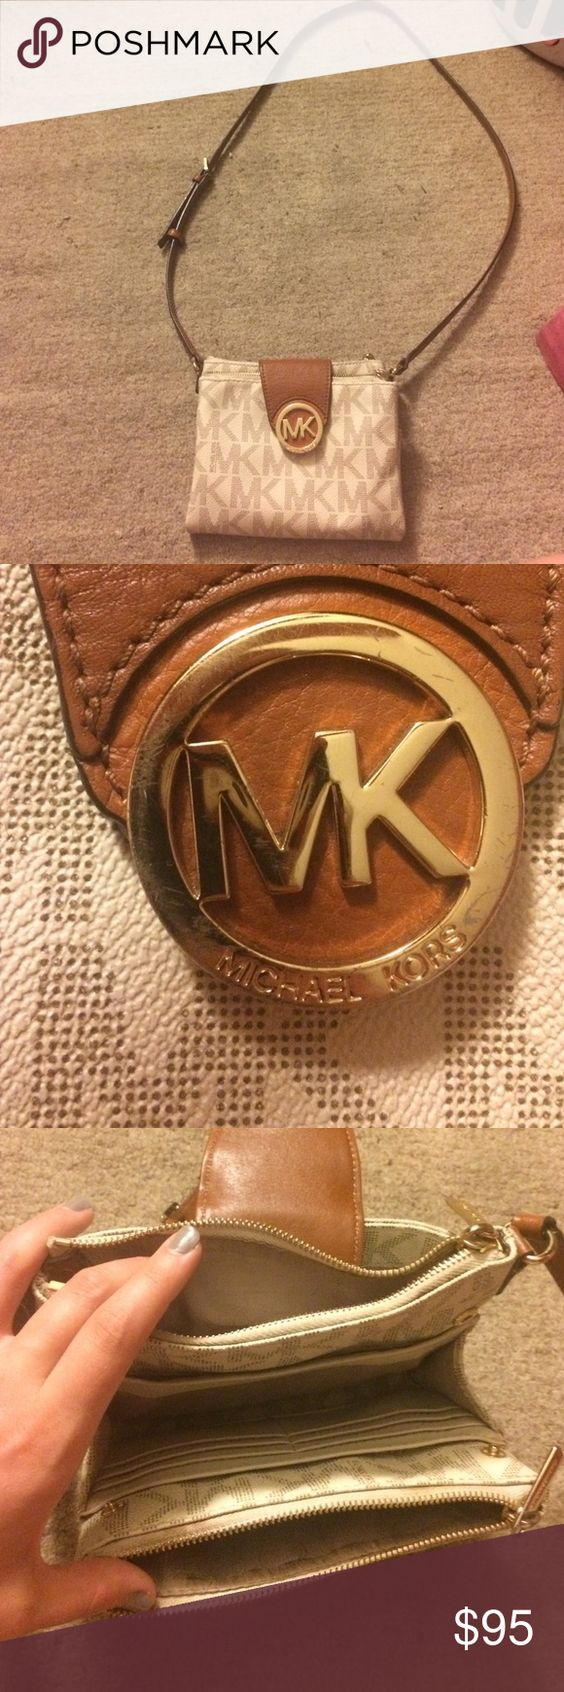 Michael Kors crossbody bag. Authentic MK crossbody bag. Barely used. Straps are adjustable and in great condition, only flaw is the stain on the back shown in the pictures. Has multiple pockets. And is gold hardware. Price is negotiable! Send an offer Michael Kors Bags Crossbody Bags